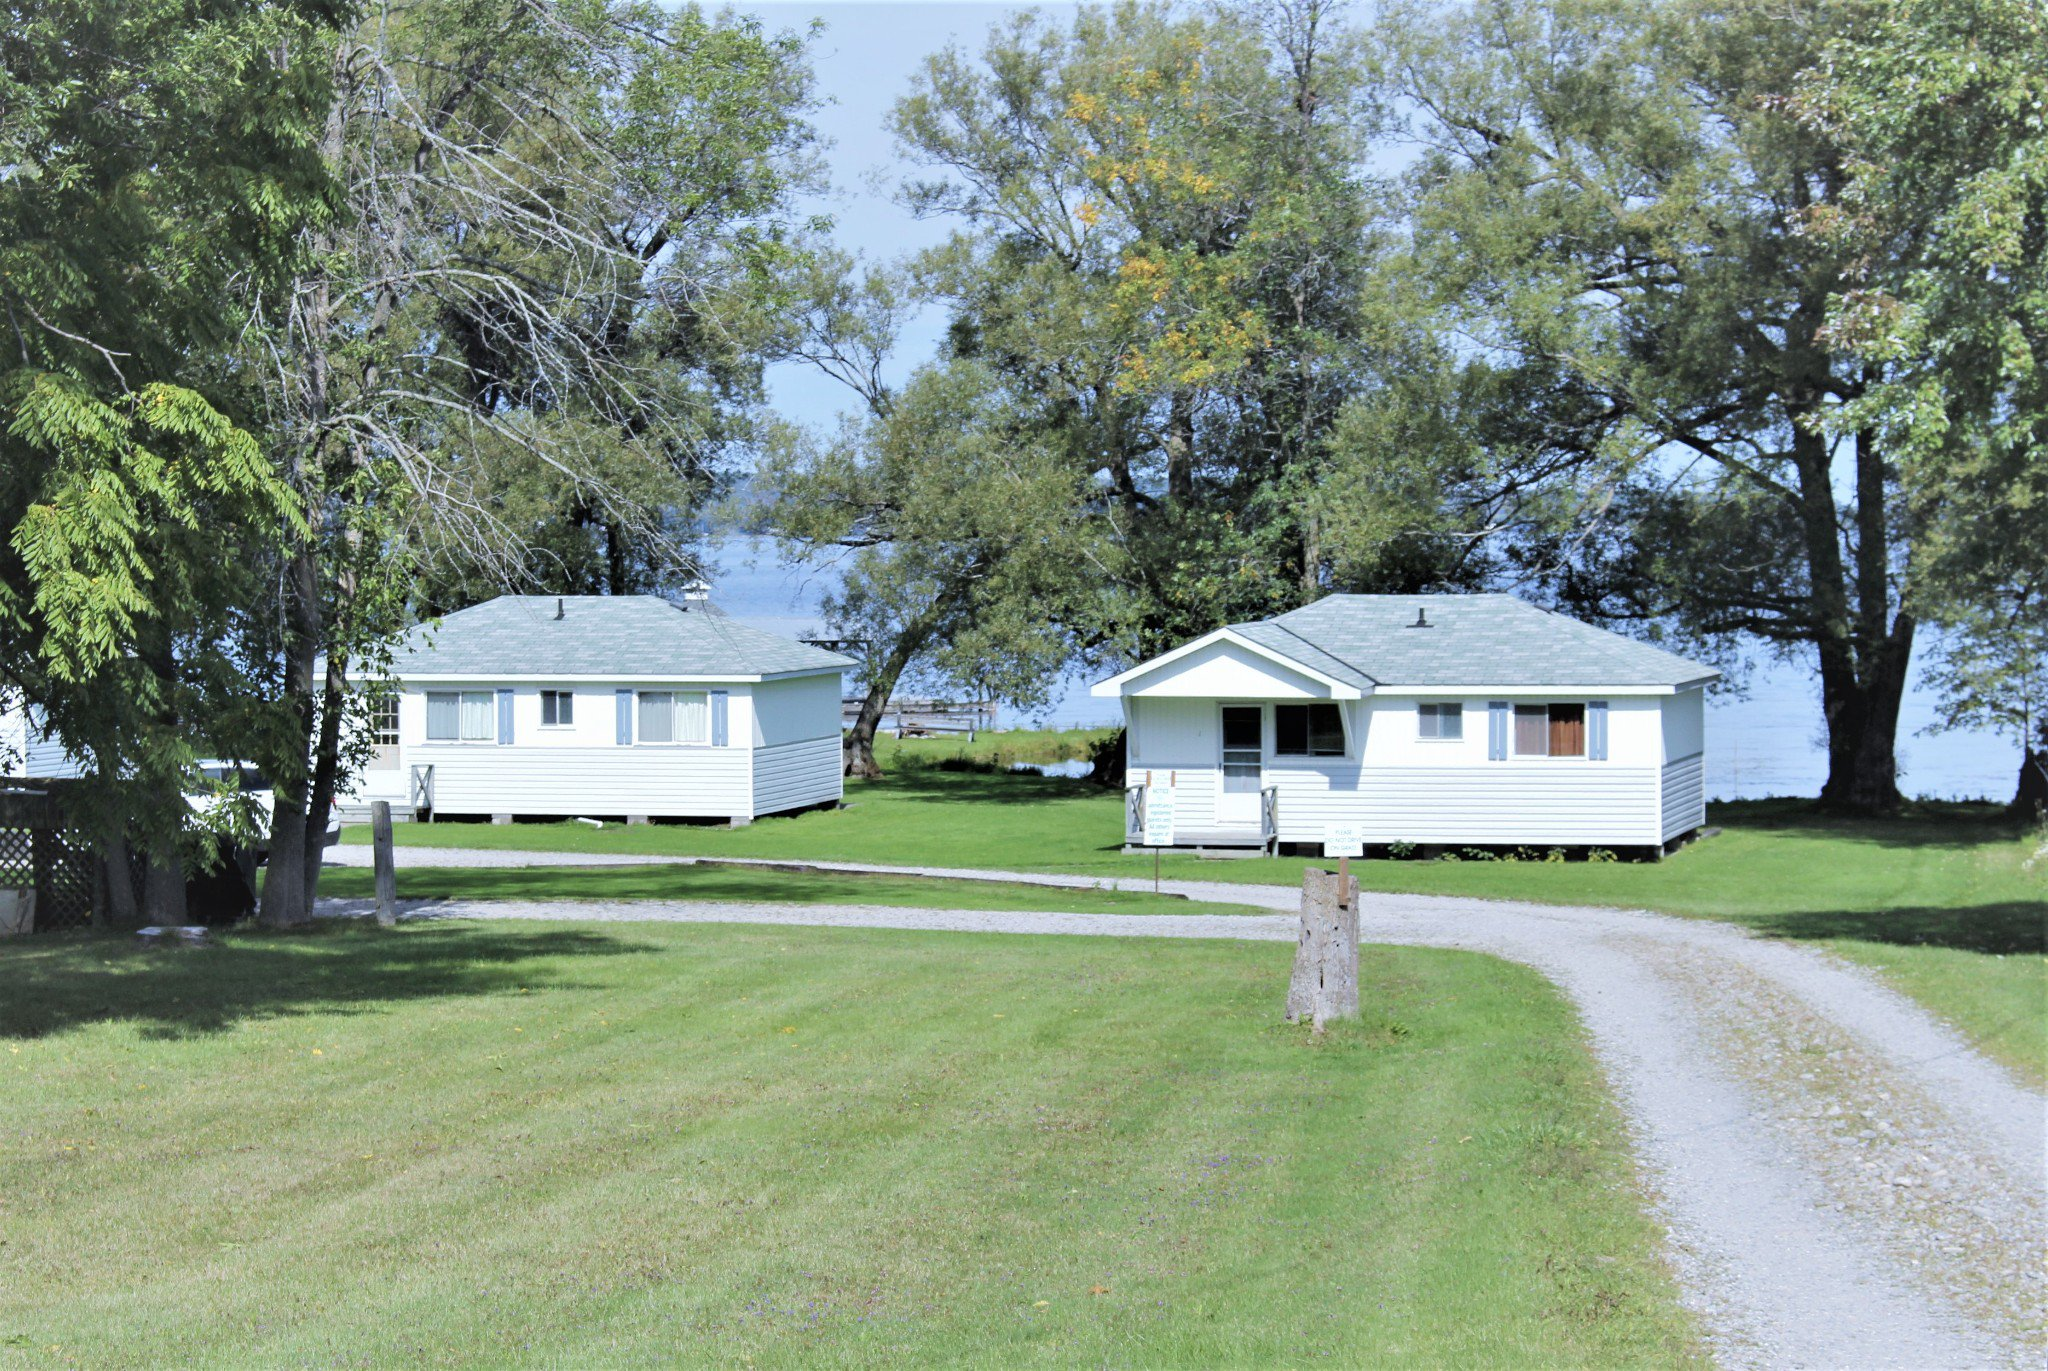 Photo 4: Photos: 6010 Rice Lake Scenic Drive in Harwood: Other for sale : MLS®# 223405